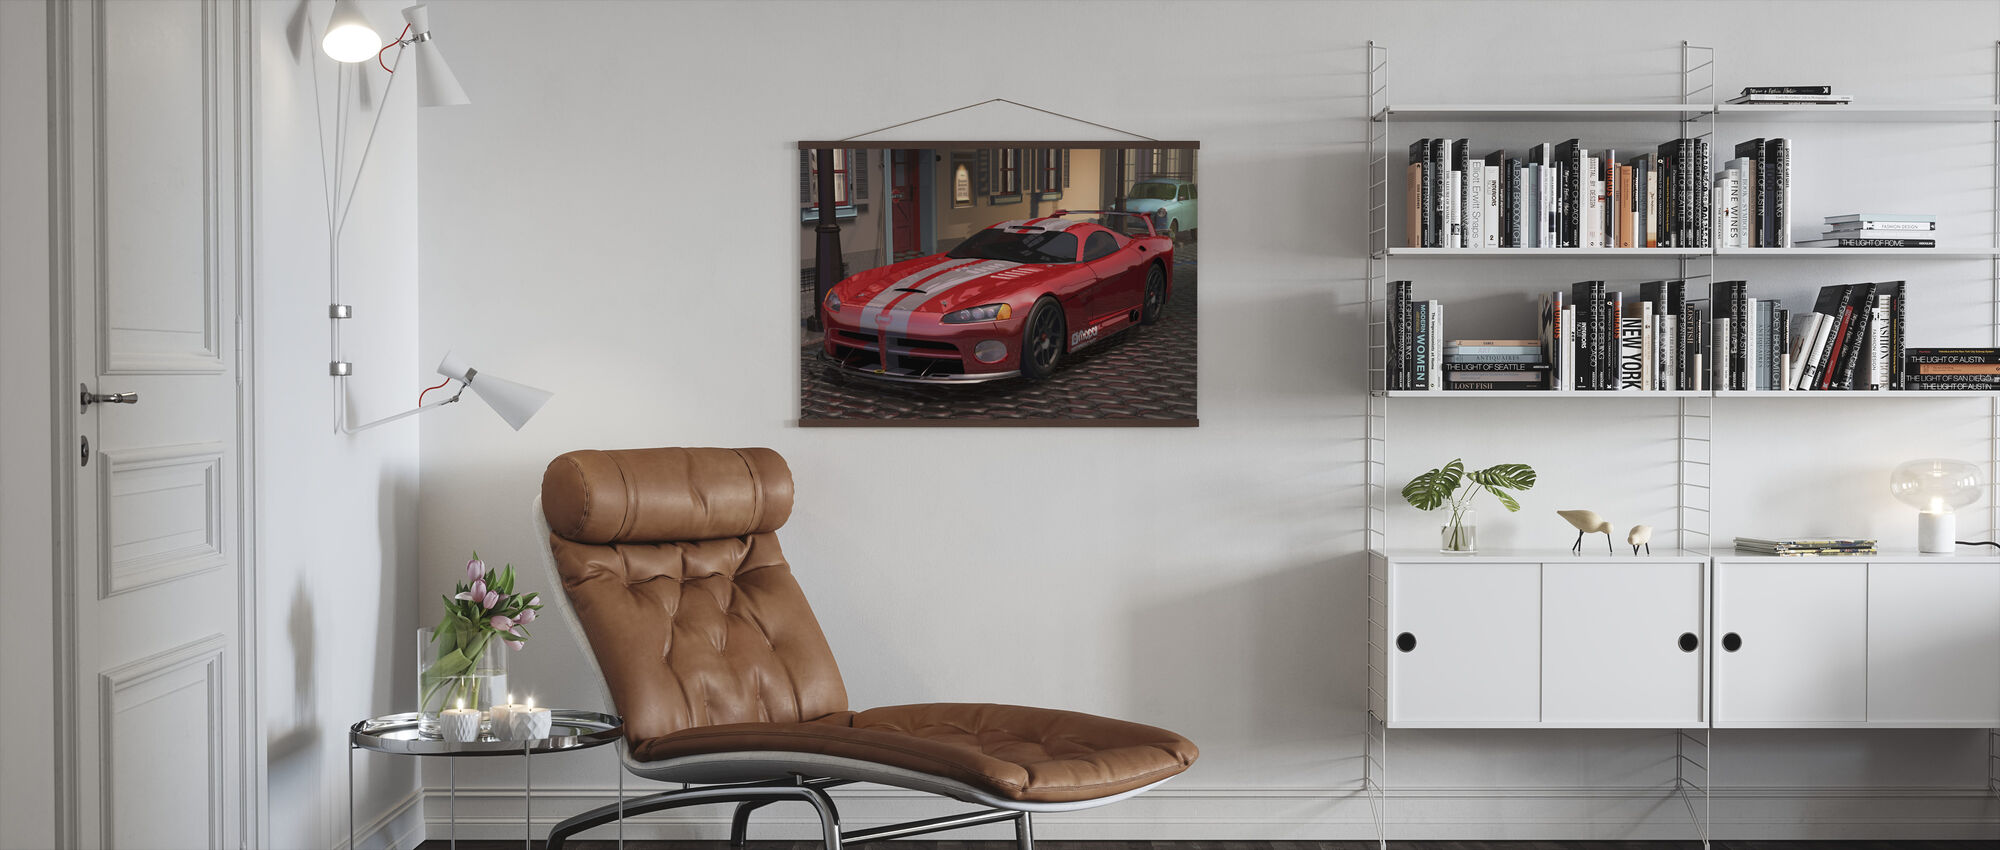 Red Fast Car - Poster - Living Room